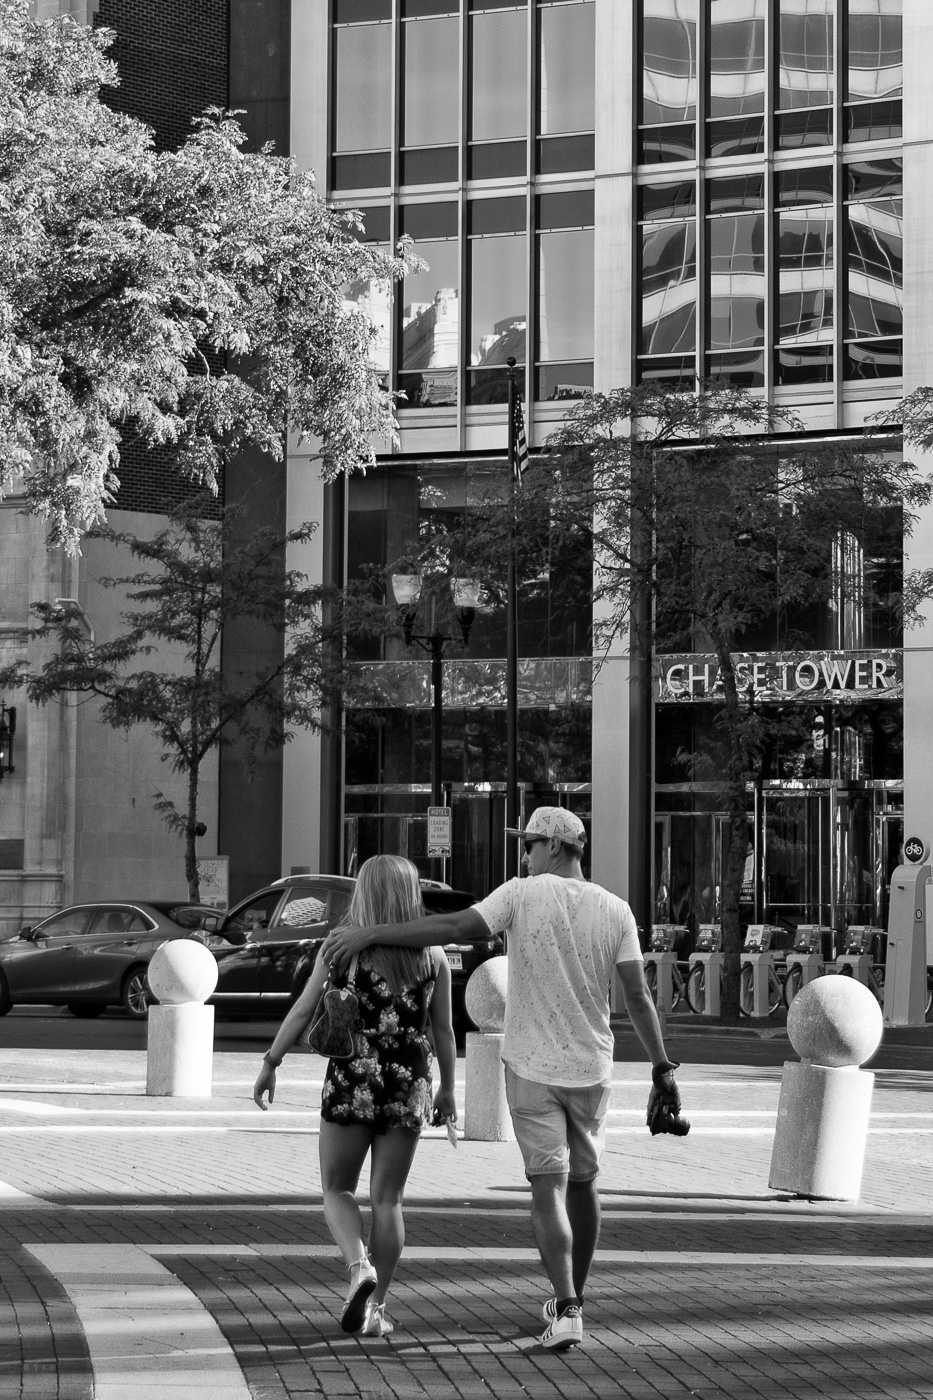 I took three shorts of this couple on Monument Circle. On the third shot the man put his arm around the girl. Sweet.